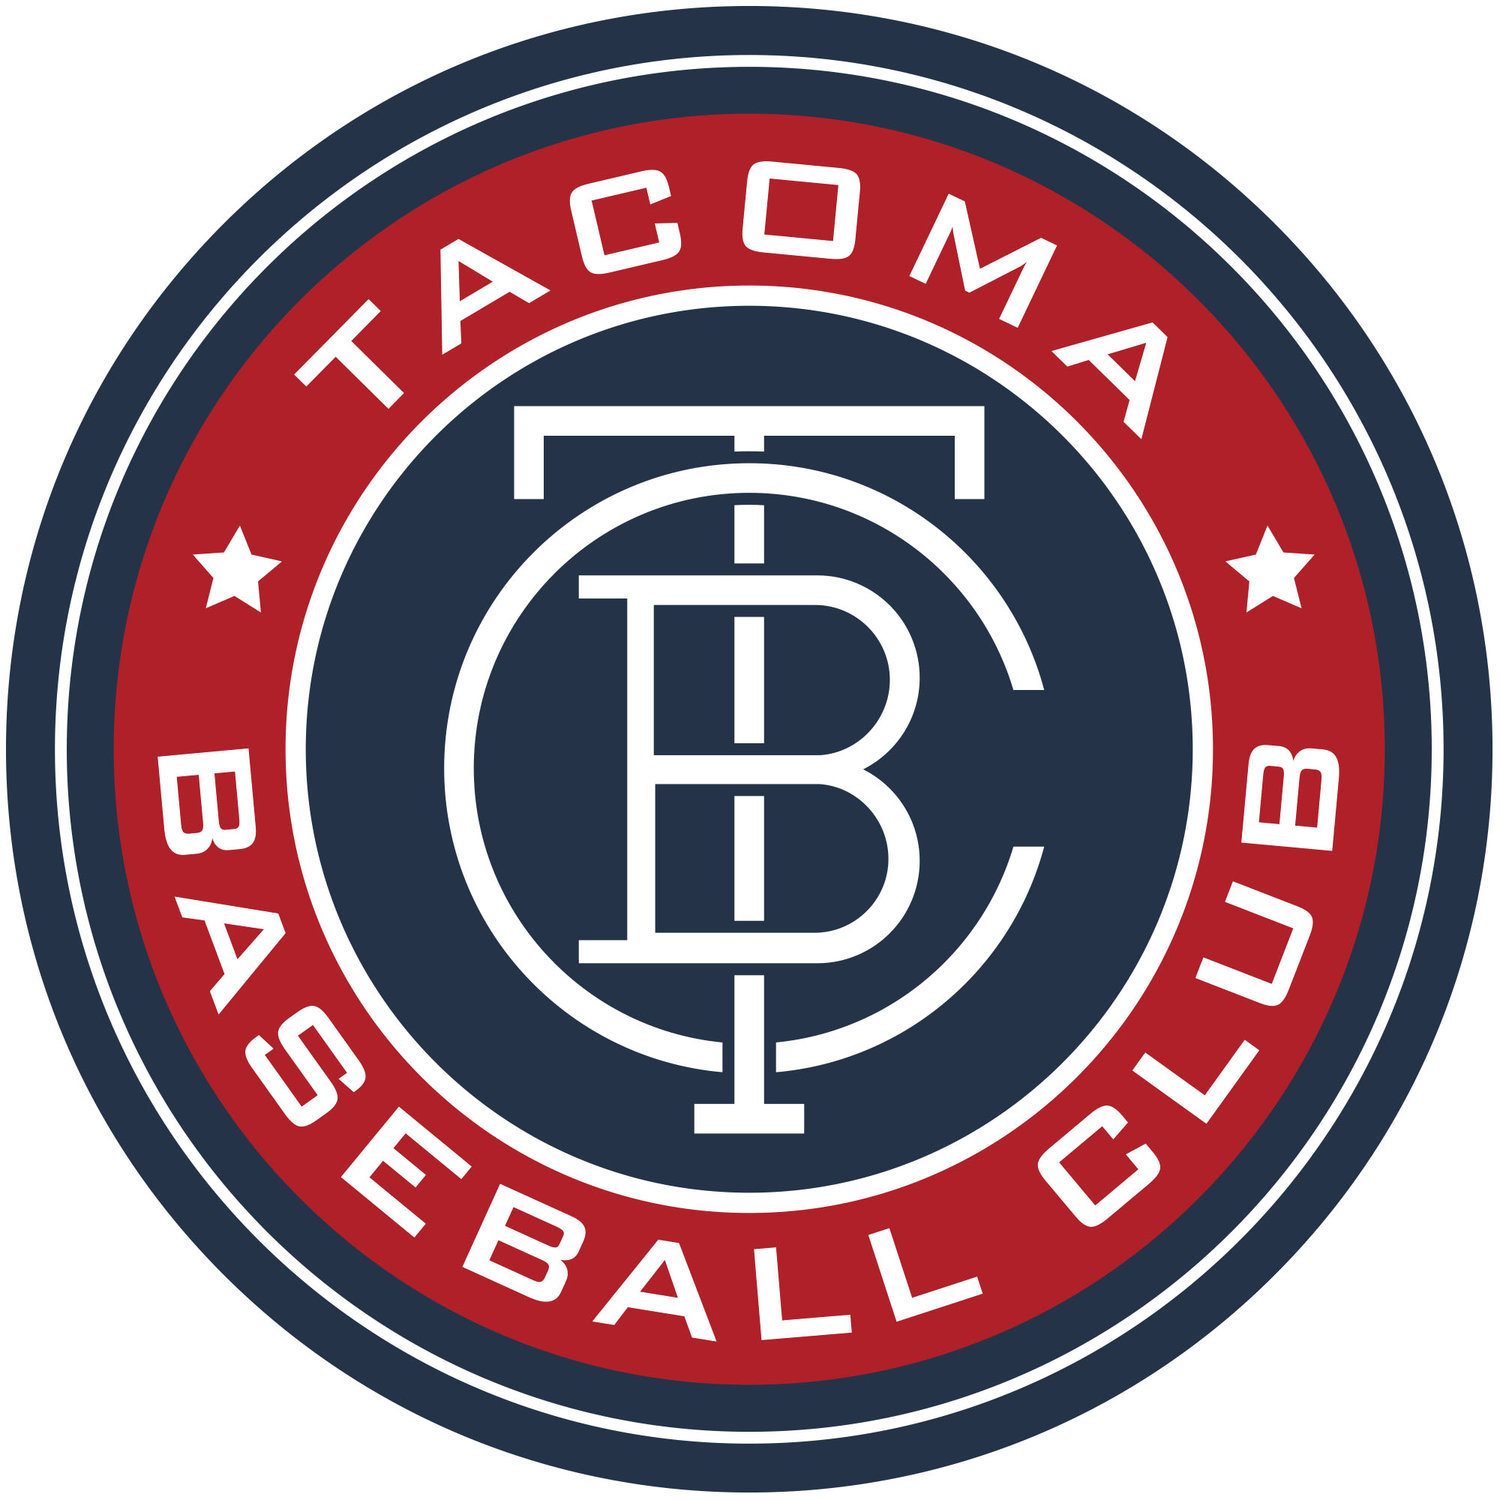 Tacoma Baseball Club